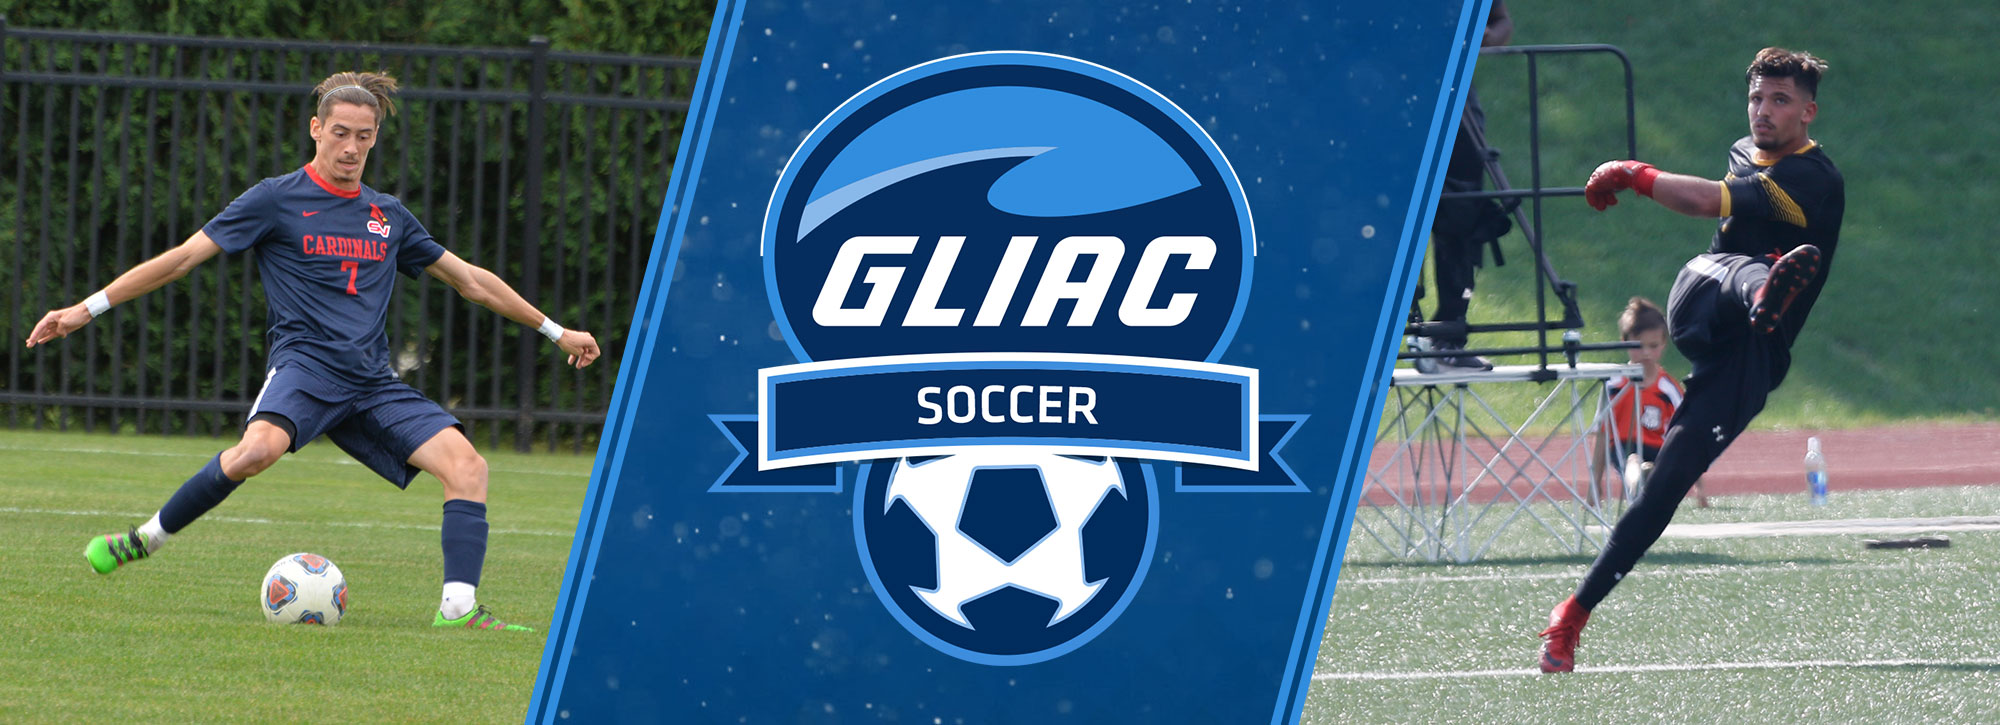 Saginaw Valley's Hamilton, Ashland's Karousos Selected GLIAC Men's Soccer Players of the Week